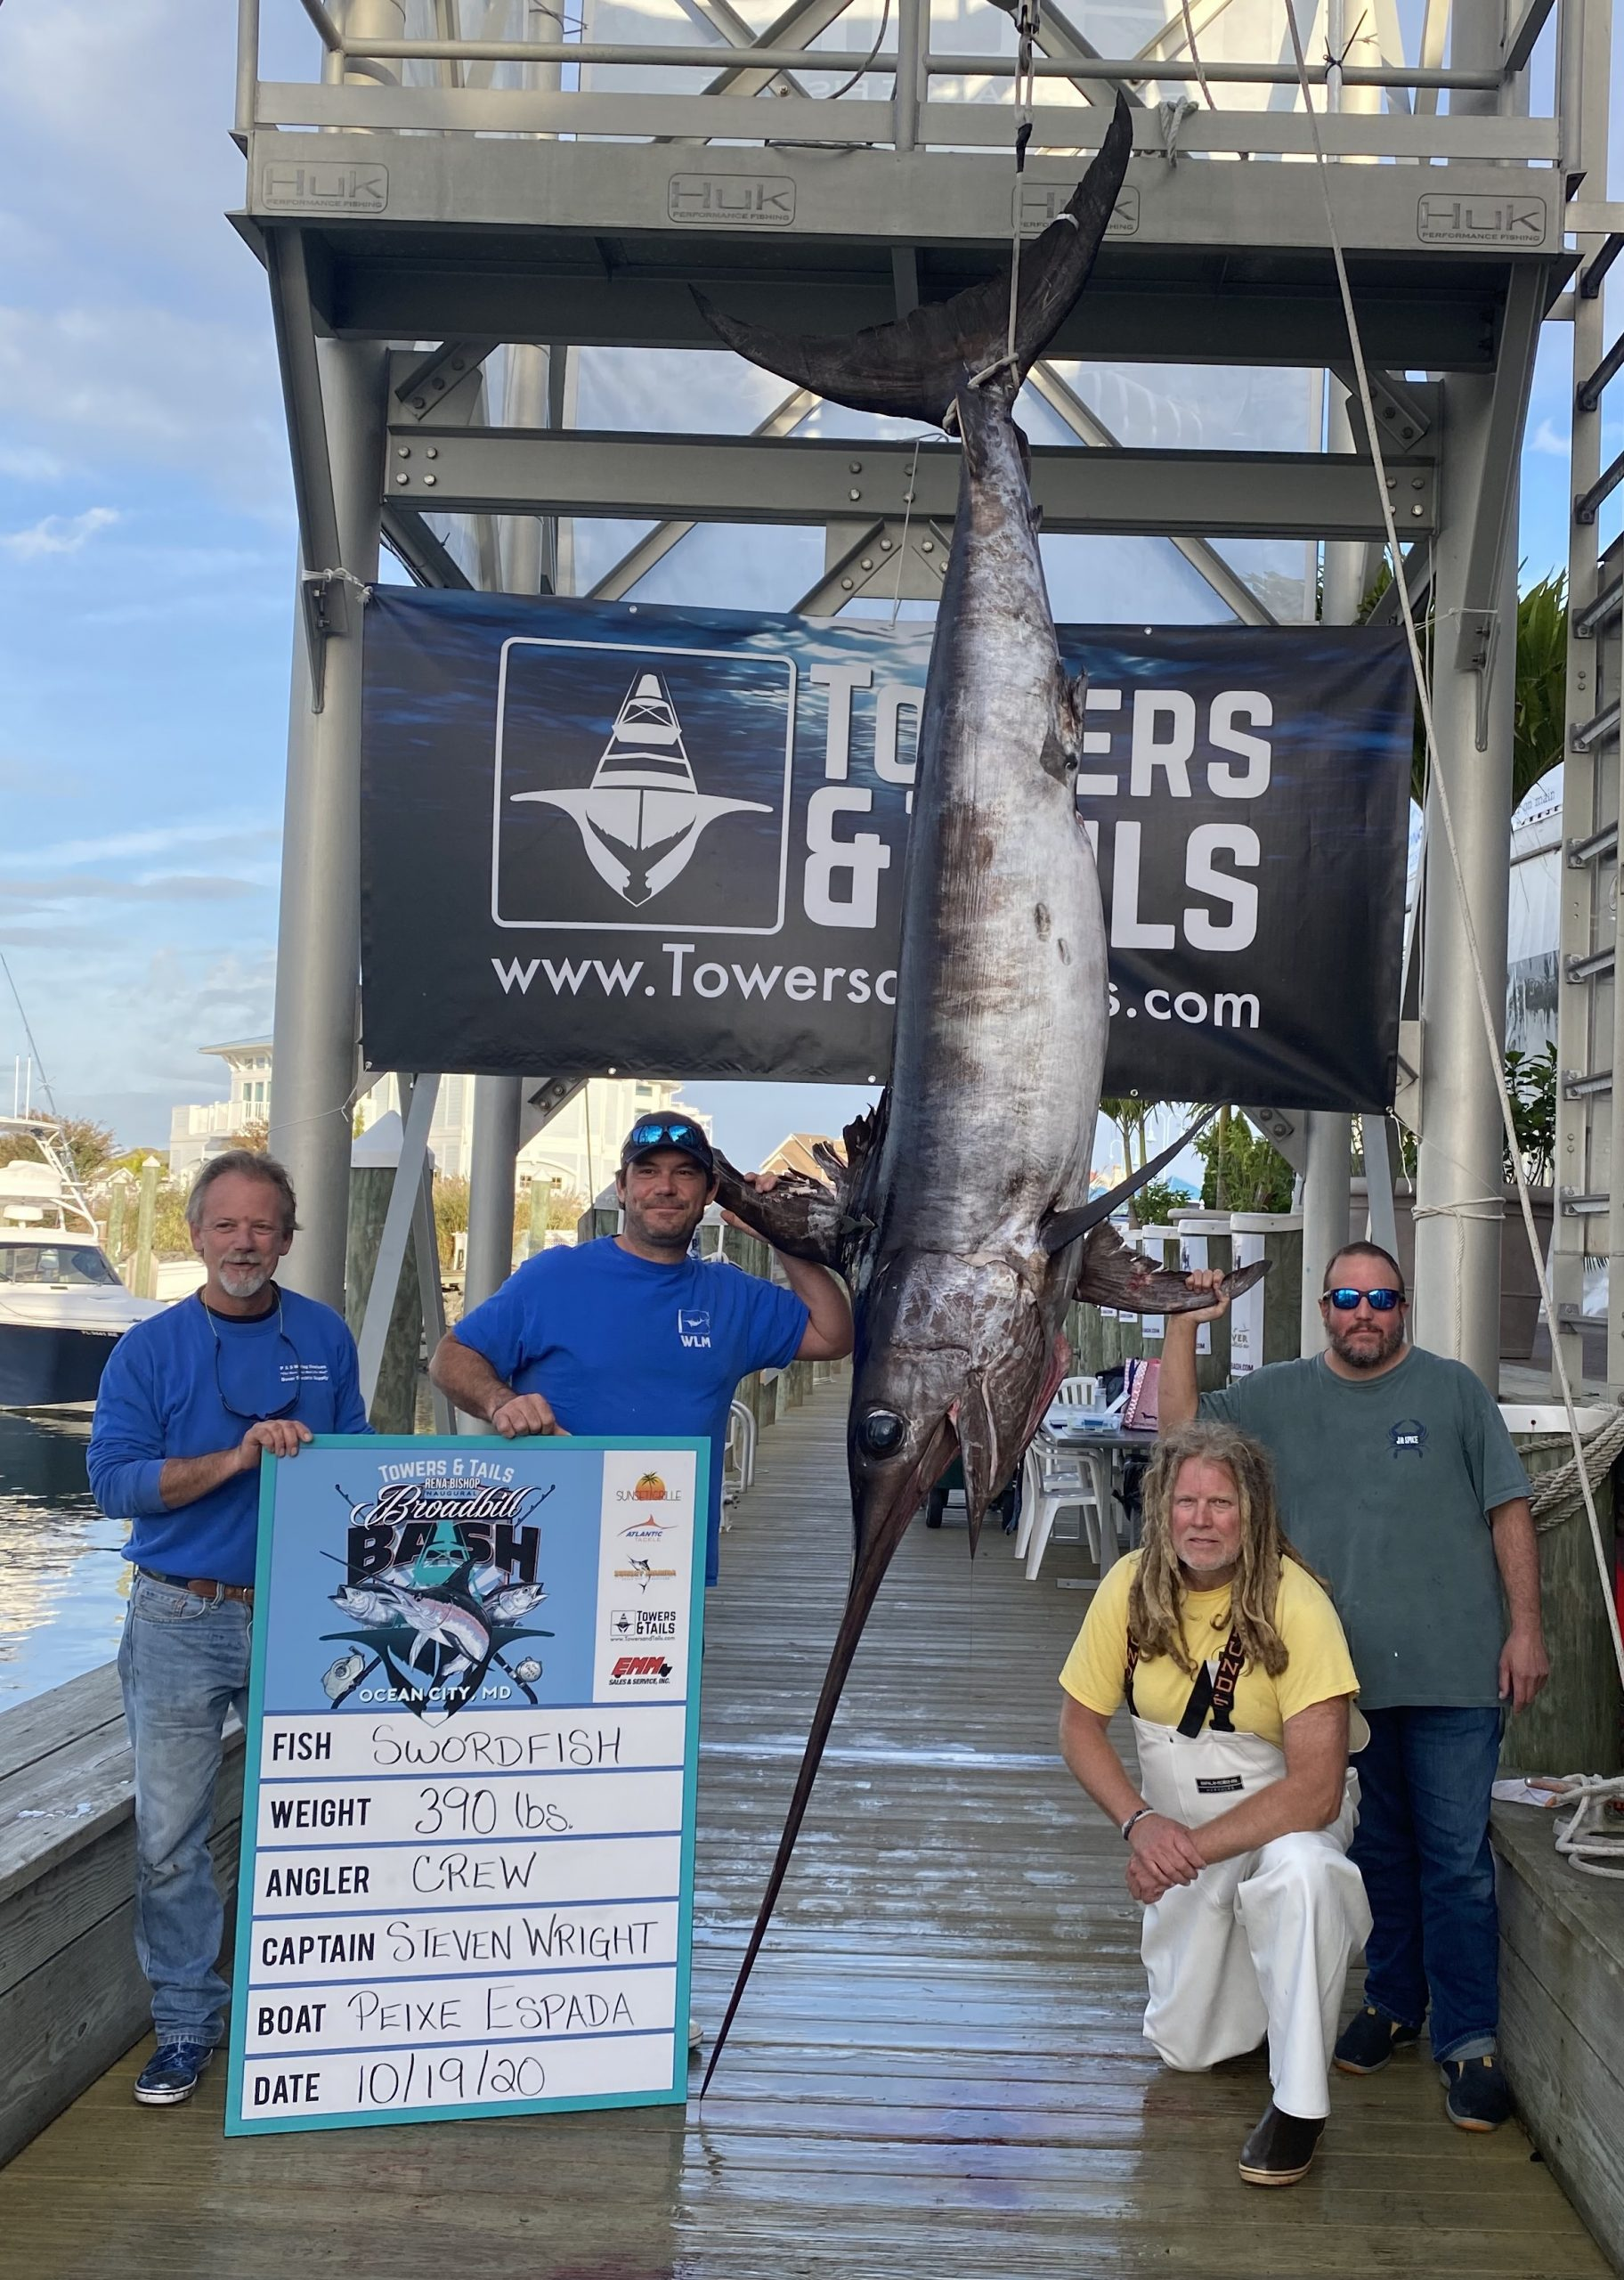 2020 Bishop Broadbill Bash Results